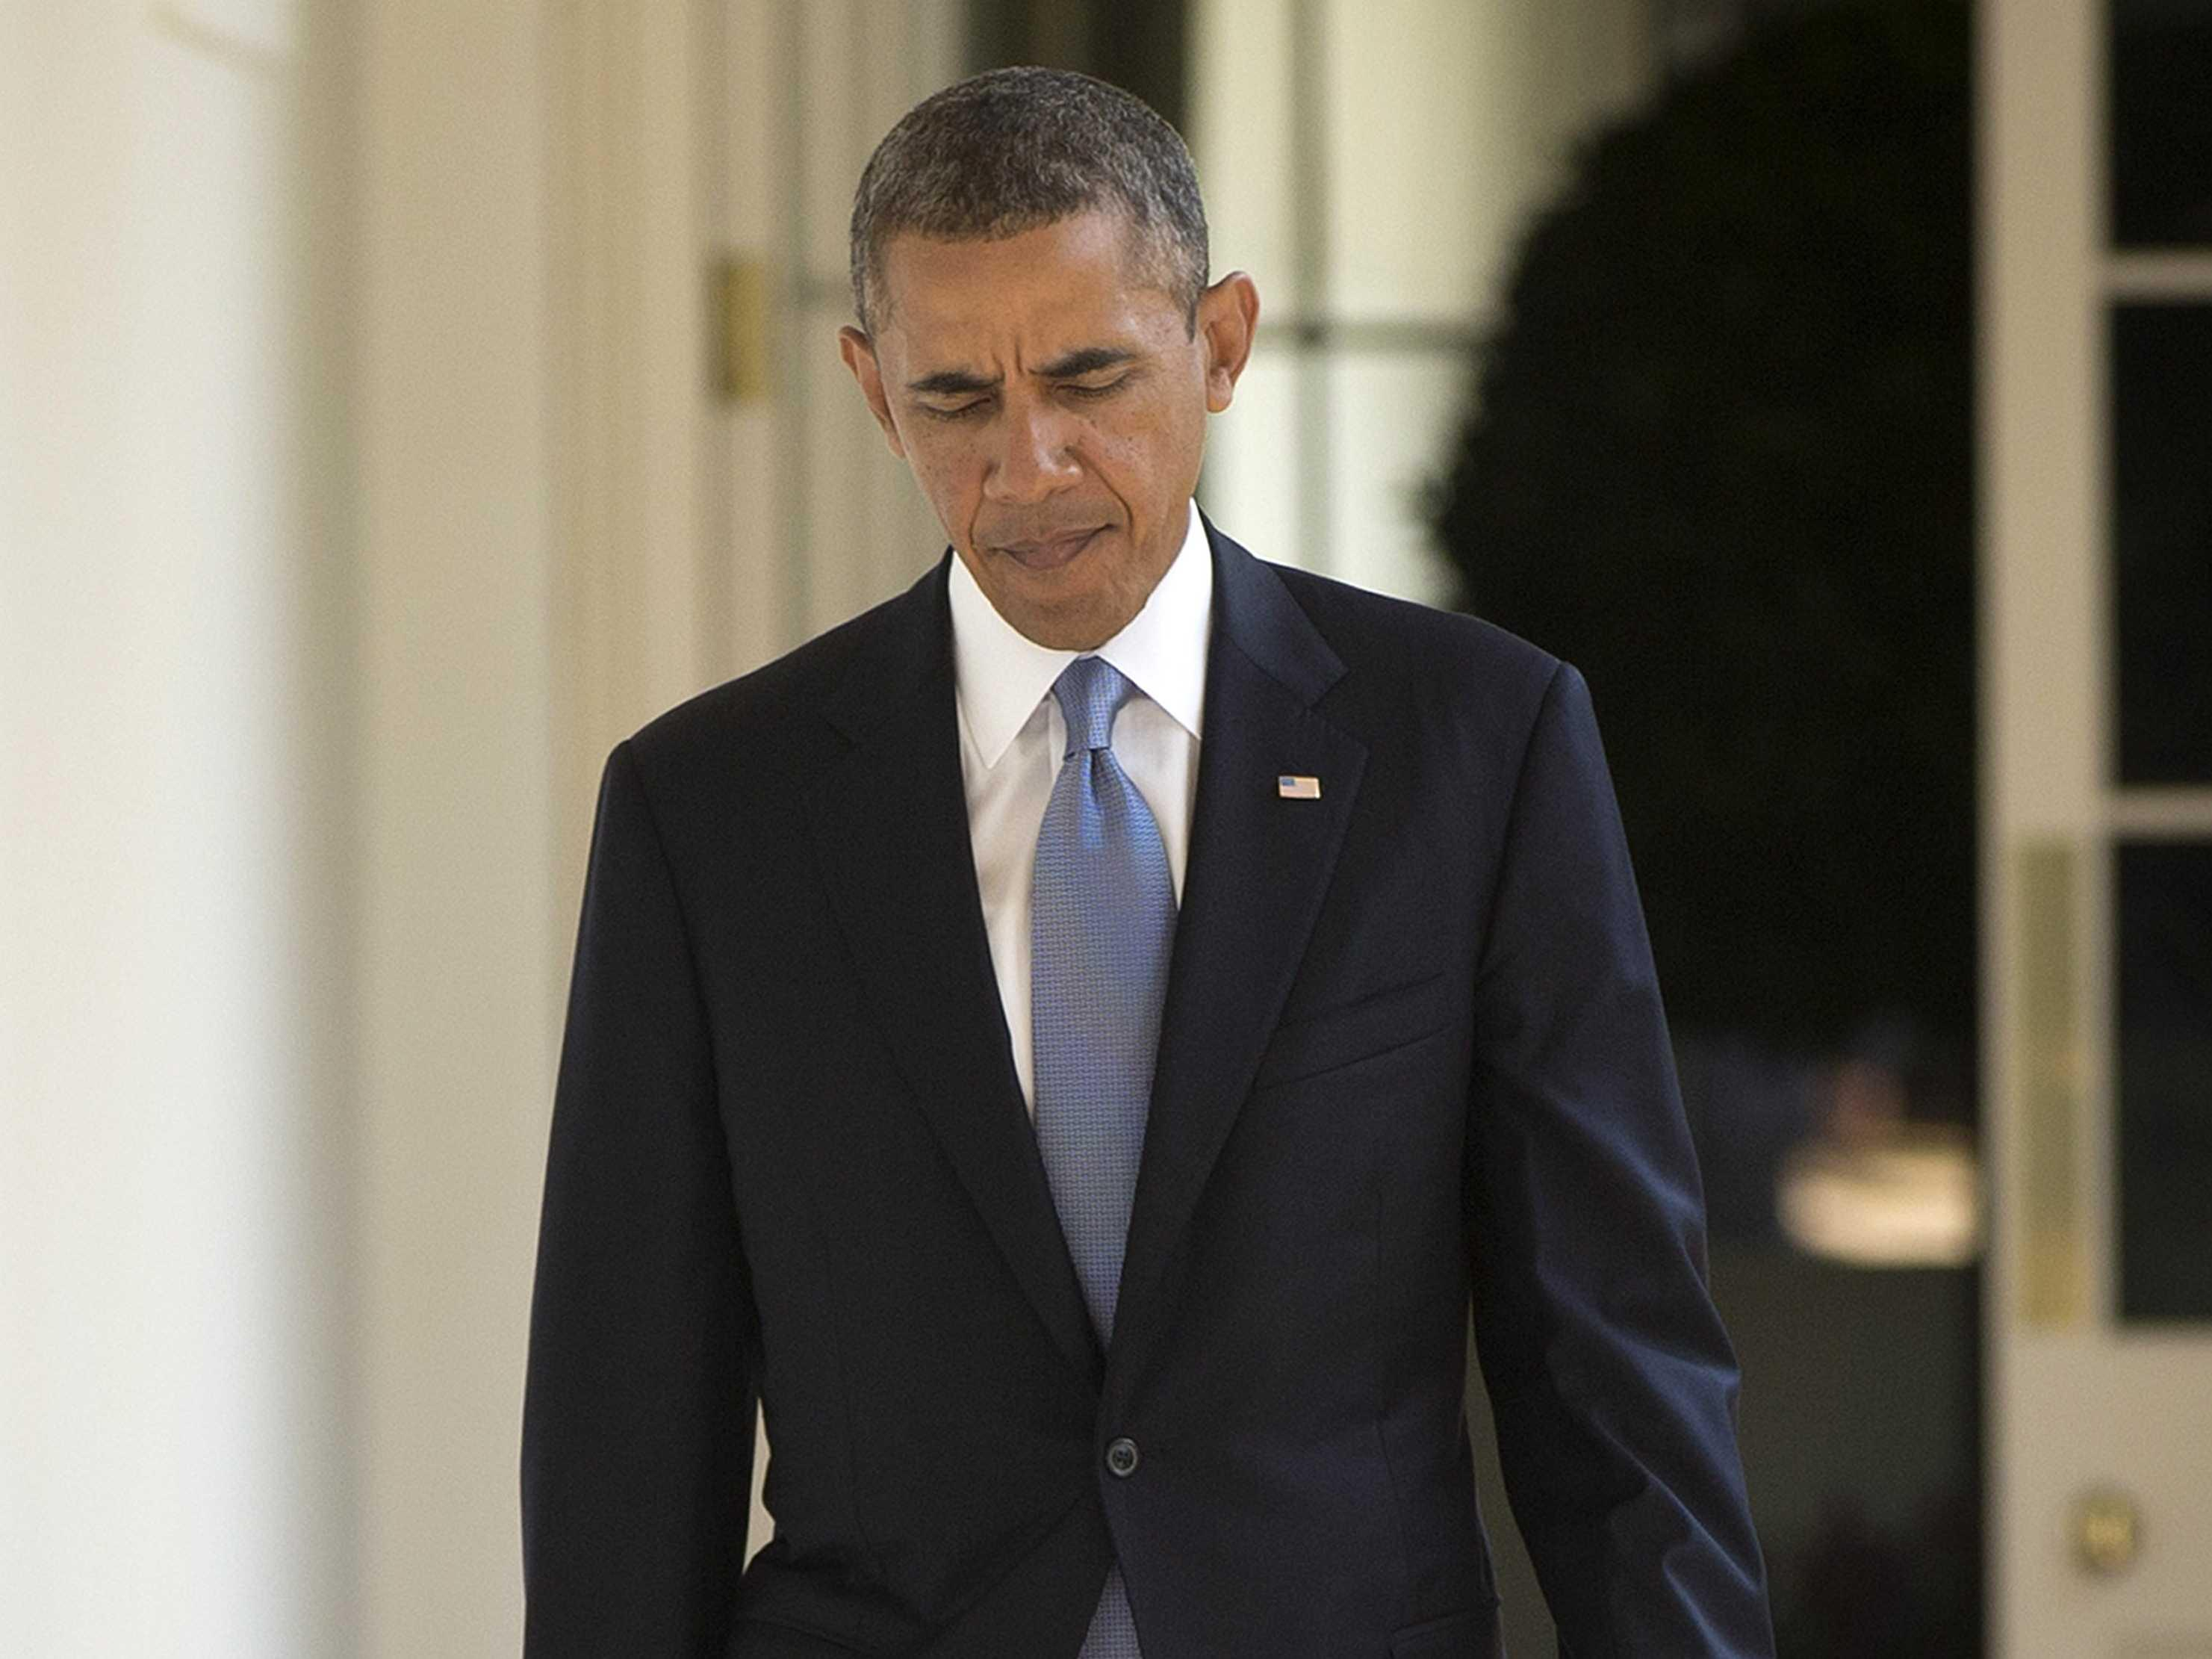 Ex-administration official explains where Obama went wrong in Syria